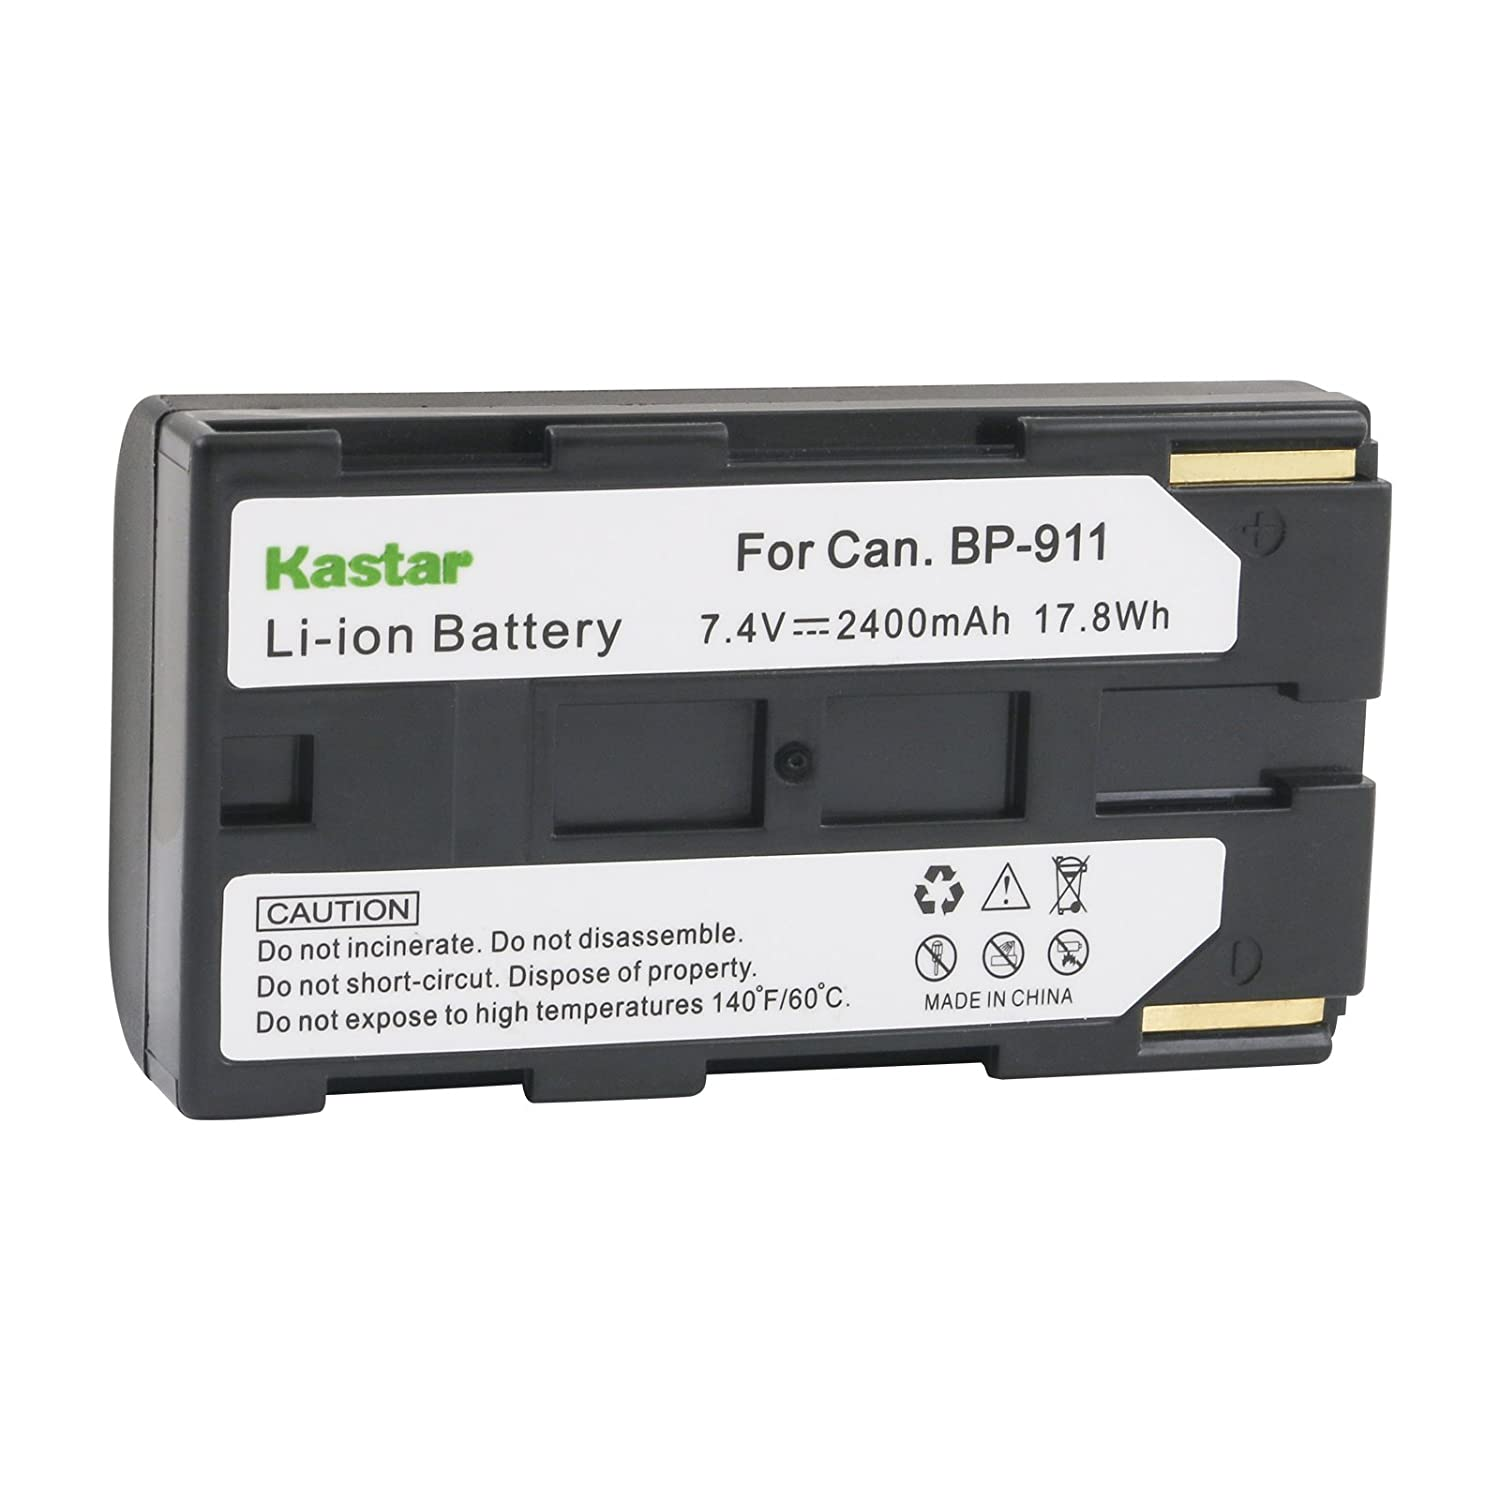 BP-950 BP-911K BP-930 BP-945 BP-935 BP-915 BP-925 Kastar Camcorder Battery Replacement for Canon BP-911 BP-914